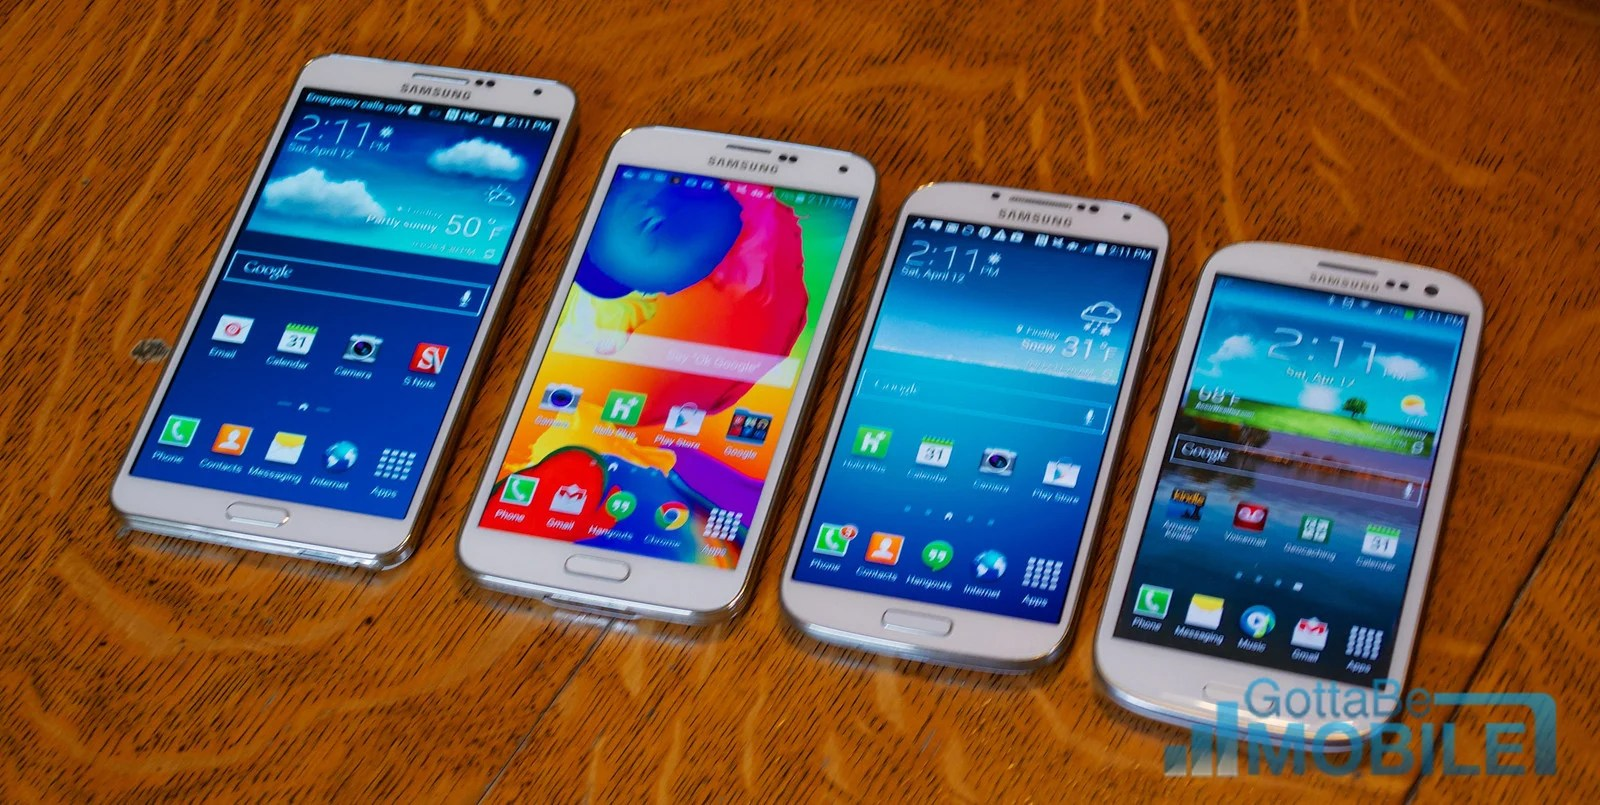 Galaxy Alpha Vs S5 samsung finally rolls out android 4.4.4 kitkat